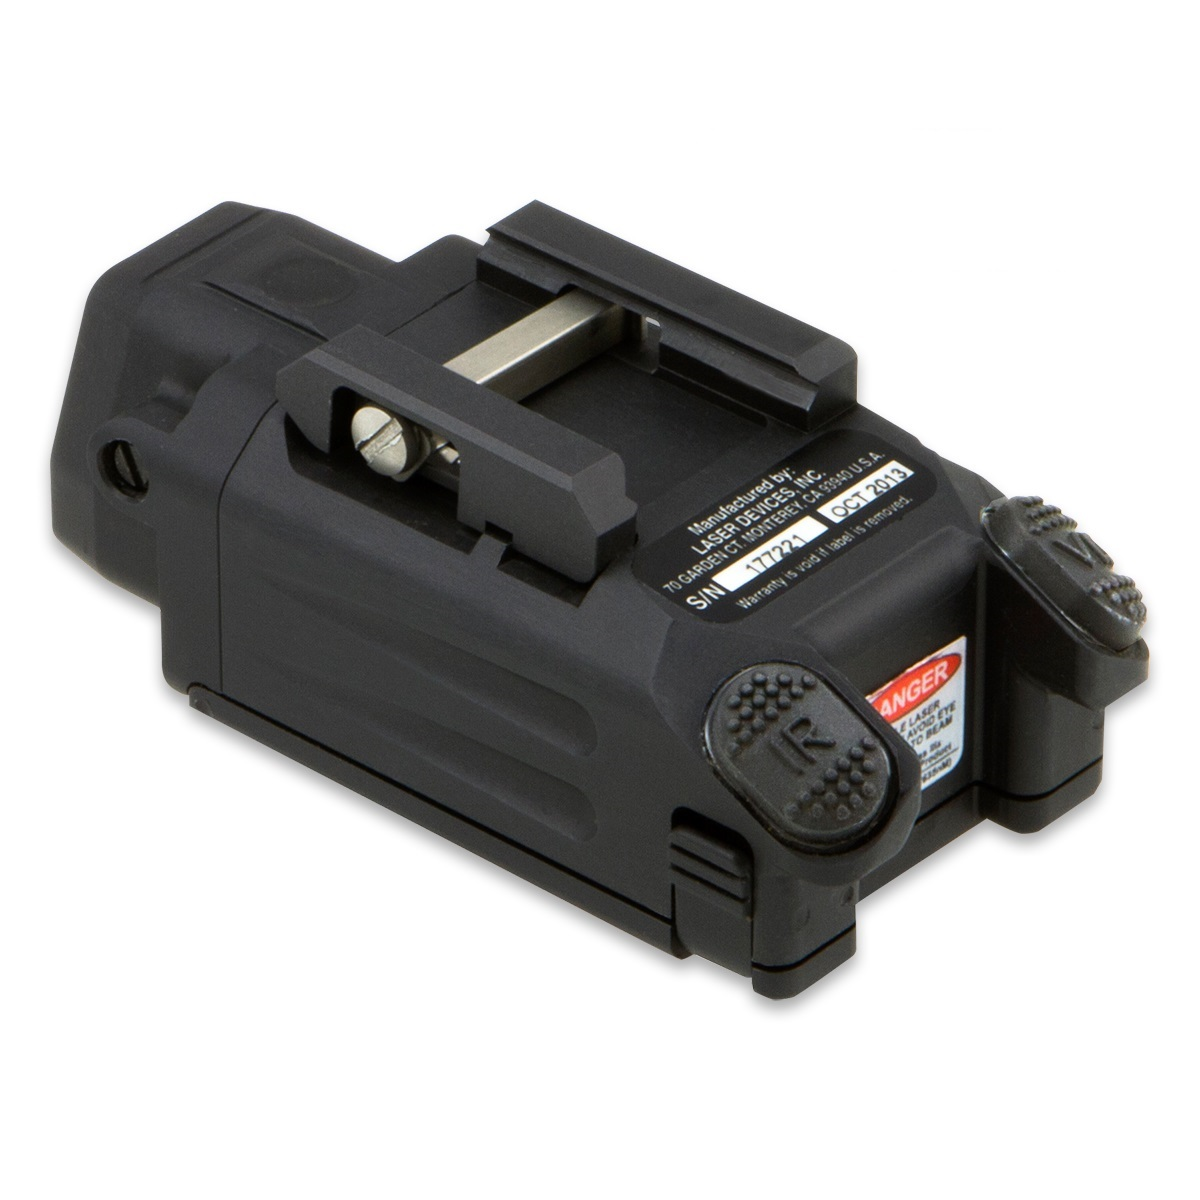 Dbal Pl 3v Electronic Stun Gun Circuit The Combines A Covert Infrared Laser With Battlefield Proven Visible Red 9020 Or Green 9021 Aiming Module New High Output